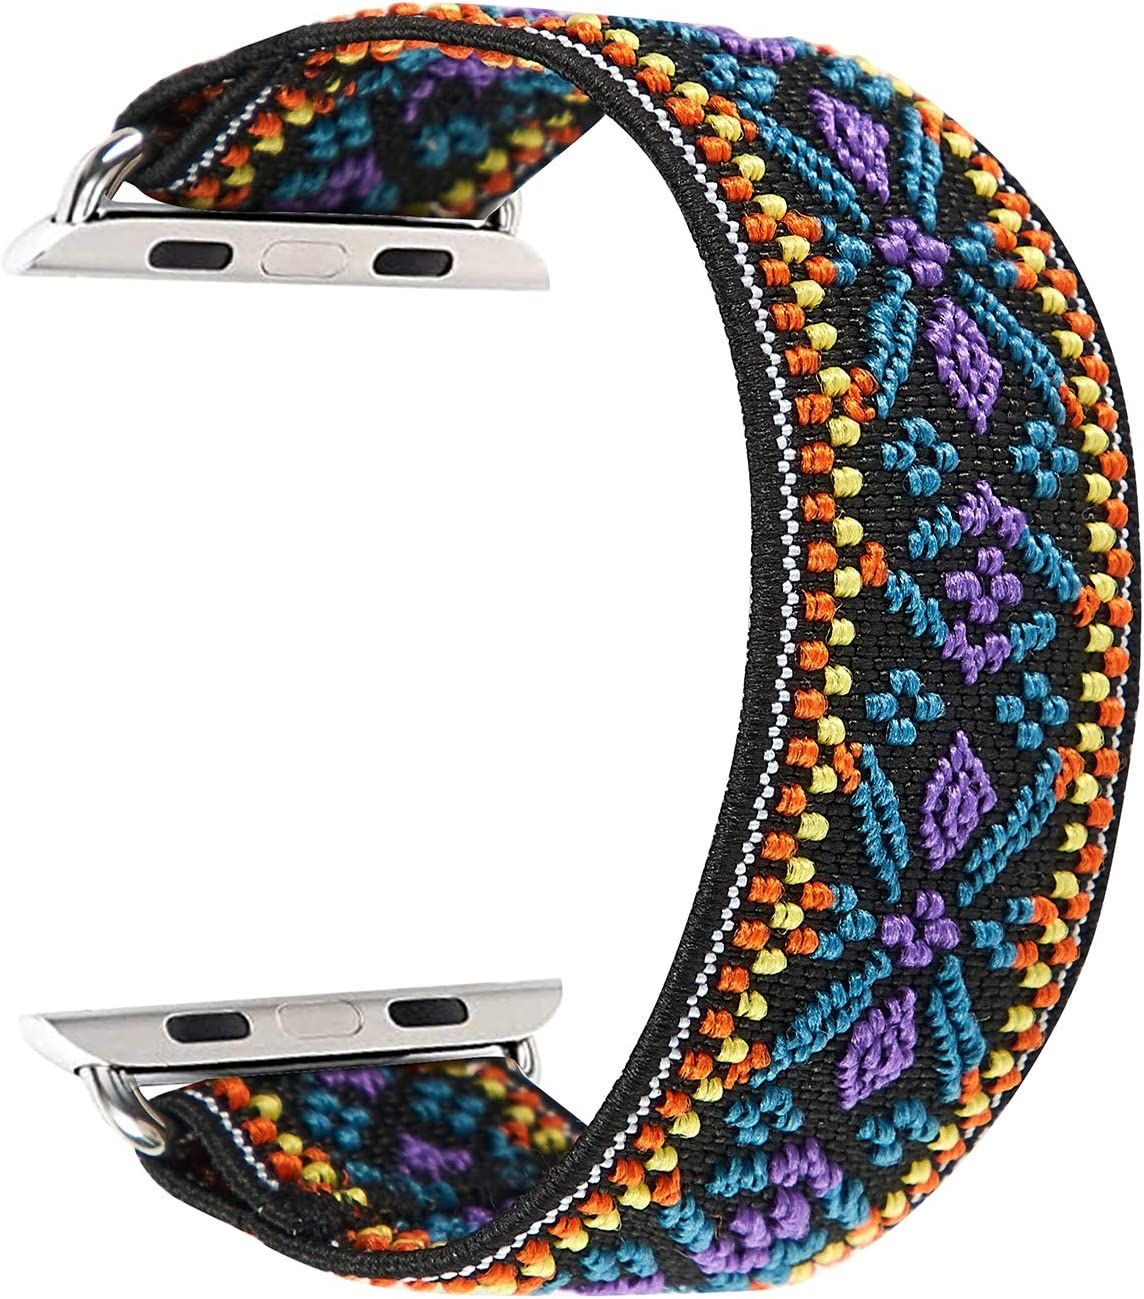 Elastic Band Compatible for Apple Watch, Scrunchie Stretch Wristbands Replacement Bracelet Loop Sport Strap for iWatch Series 1 2 3 4 5, Men Women Girls, Bohemia, 42/44mm, L